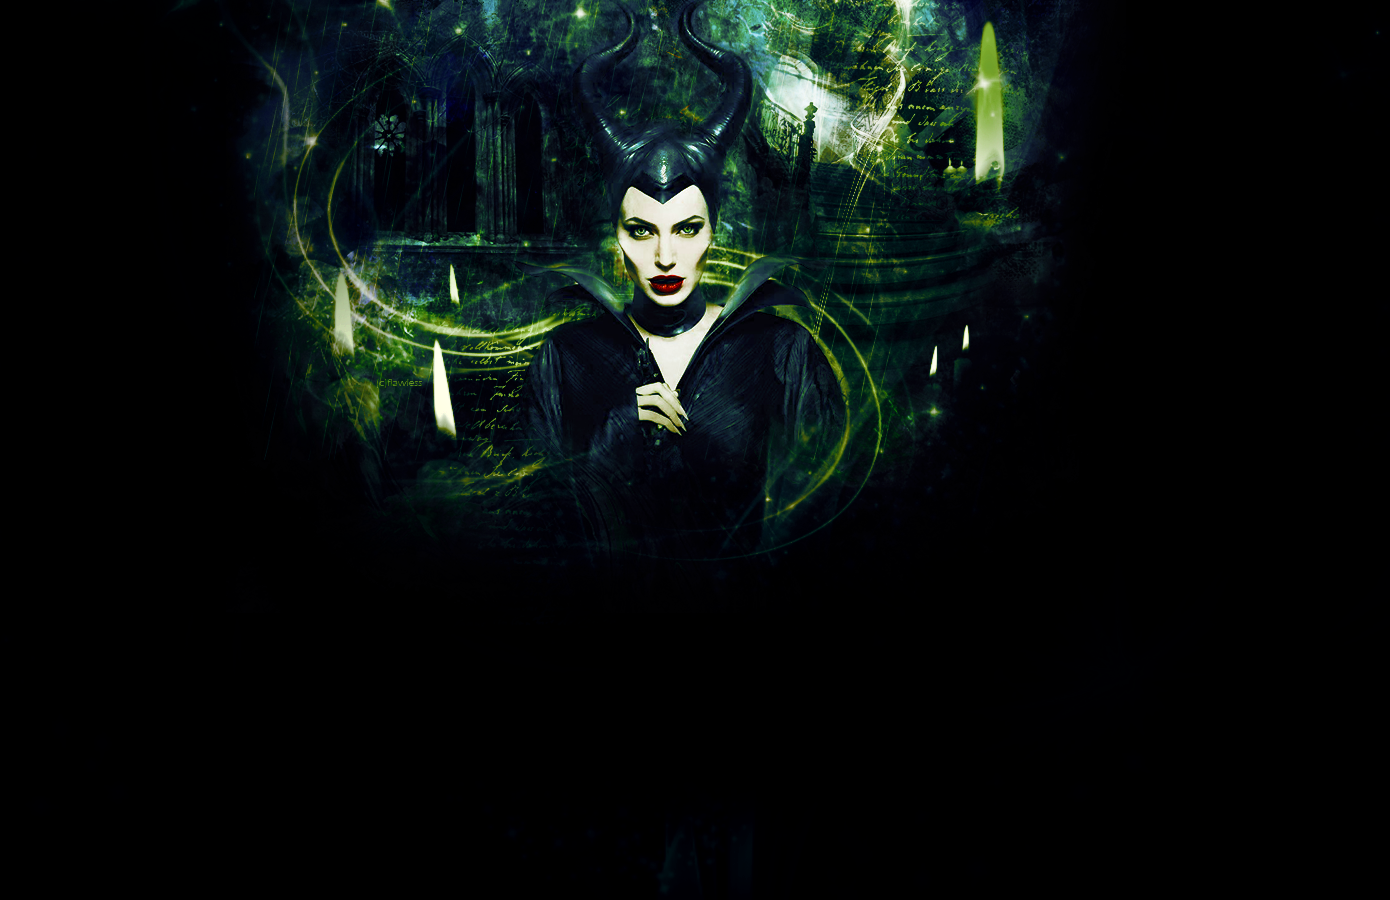 http://flawlessgrafic.deviantart.com/art/maleficent-by-Flawless-479614177?q=gallery%3Aflawlessgrafic%2F50484536&qo=2